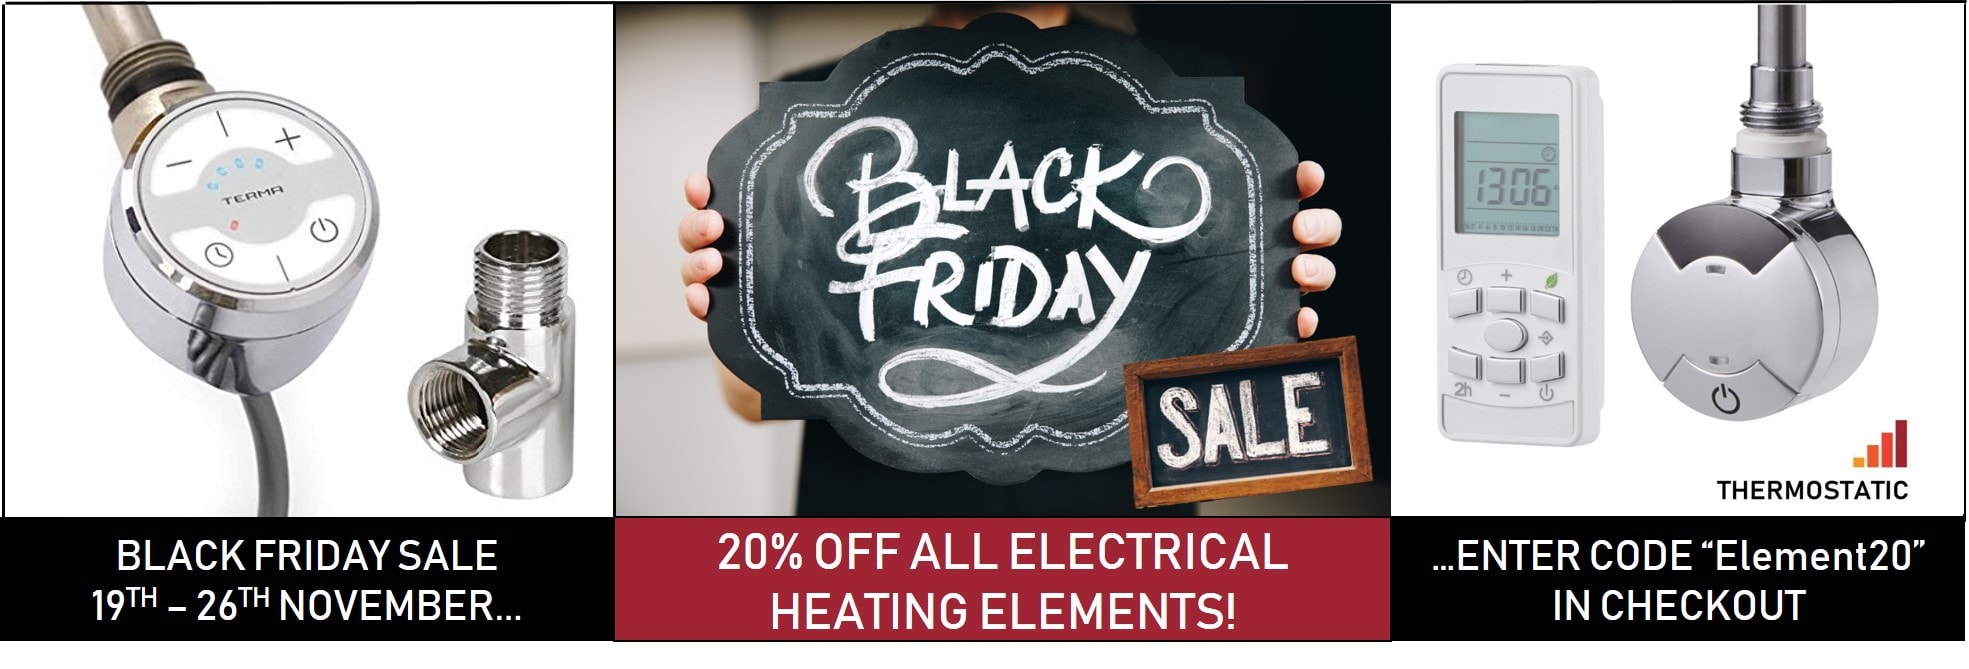 Black Friday Sale 20% off radiator heating elements electric electrical elements Terma